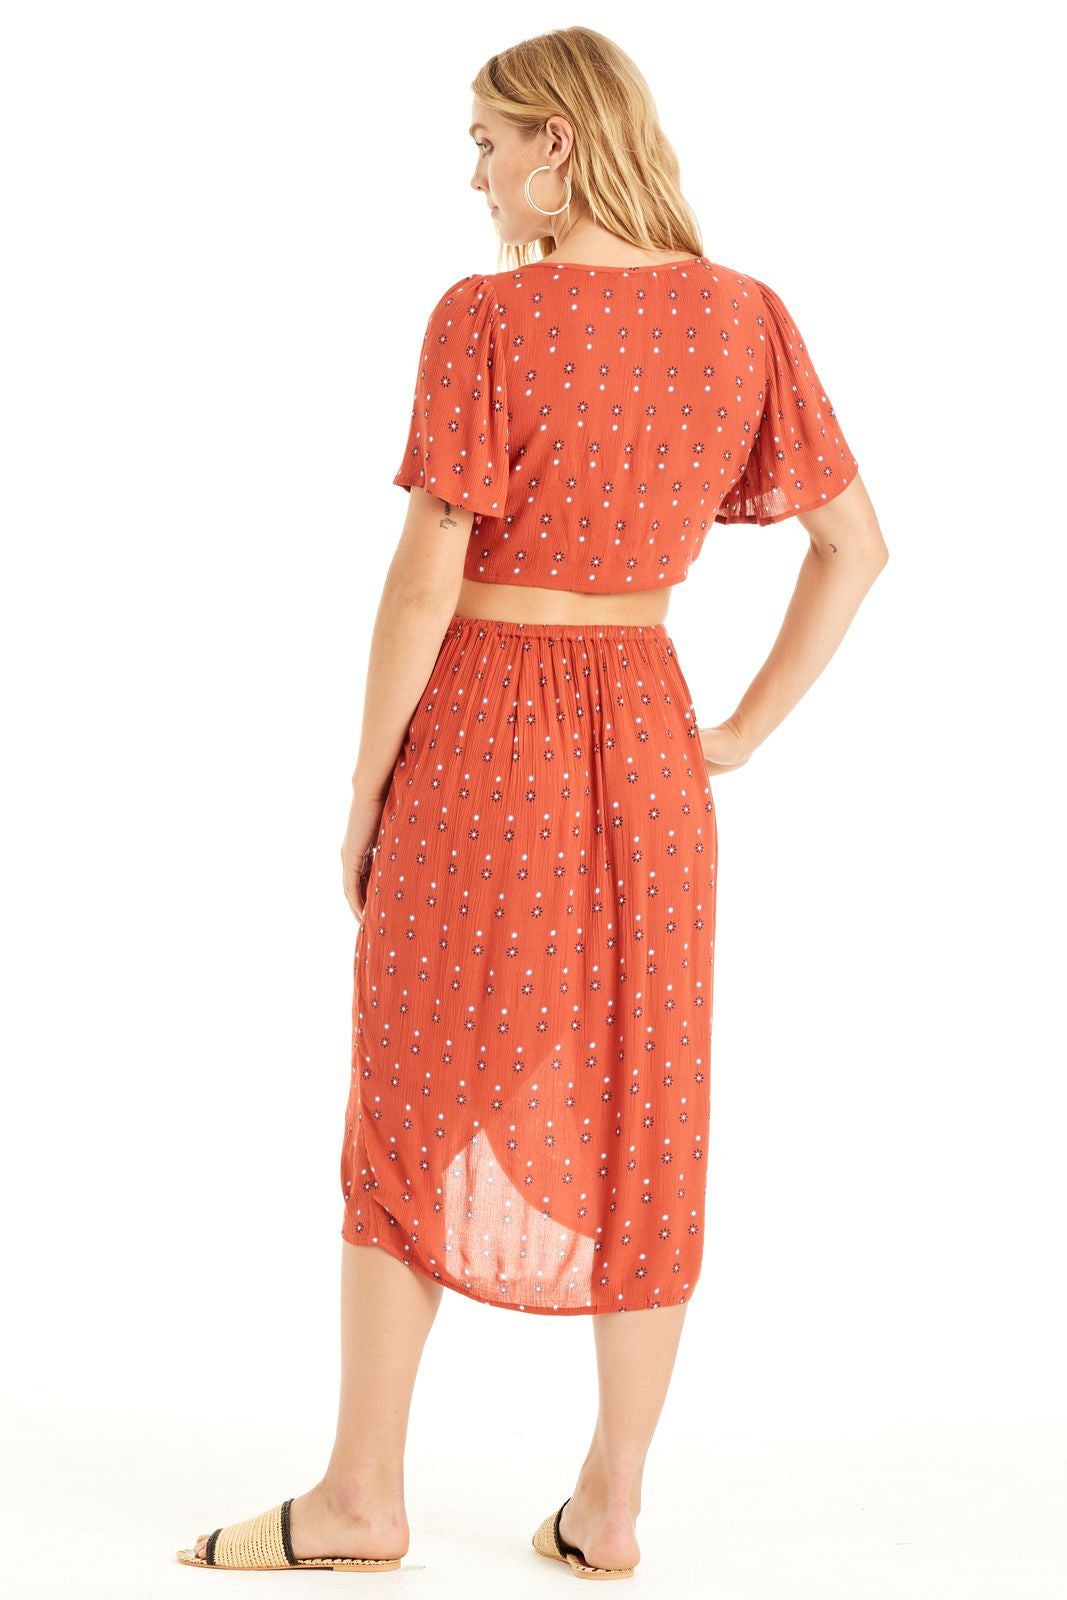 Dusty Terracotta  wrap skirt with polka dot and flower print, featuring button detailing.